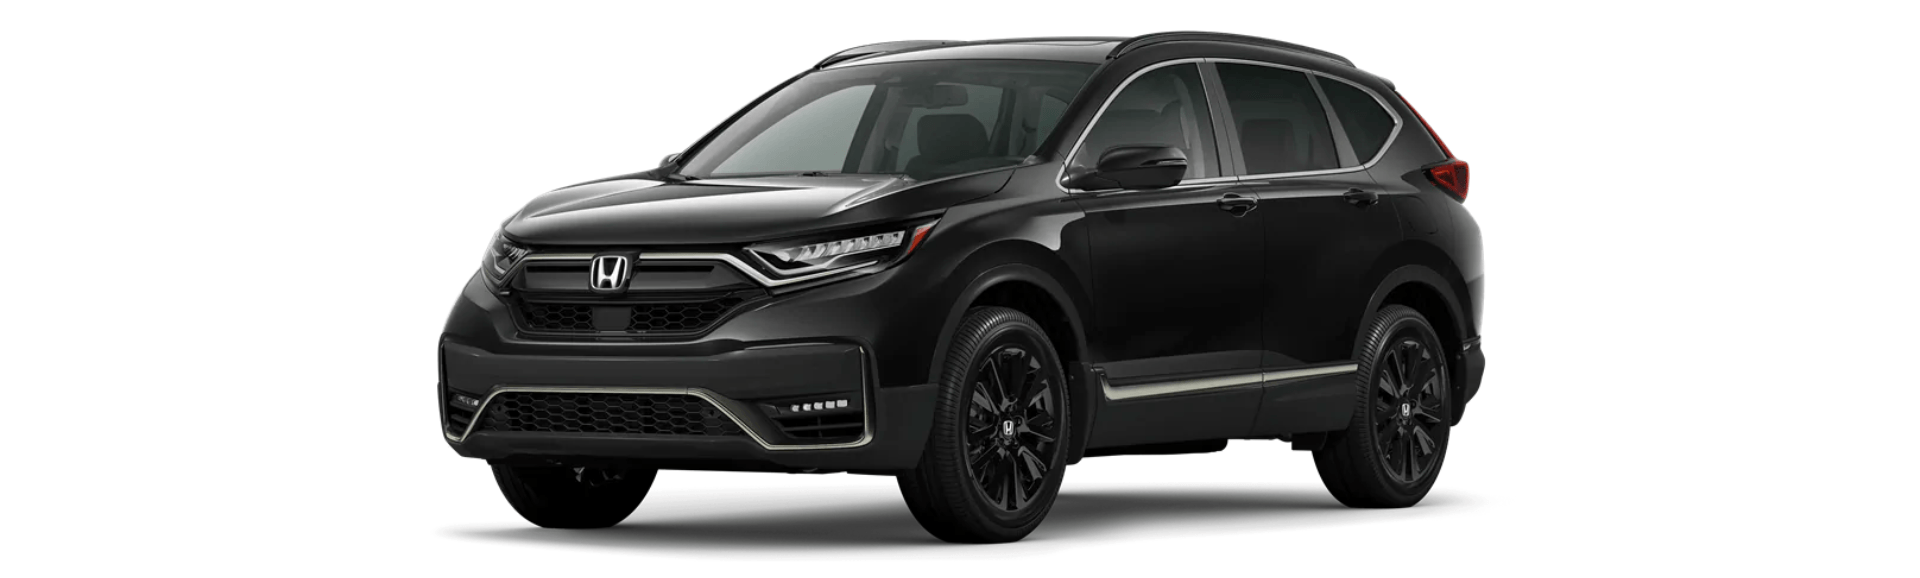 2020 Honda CR-V Black Edition on white background